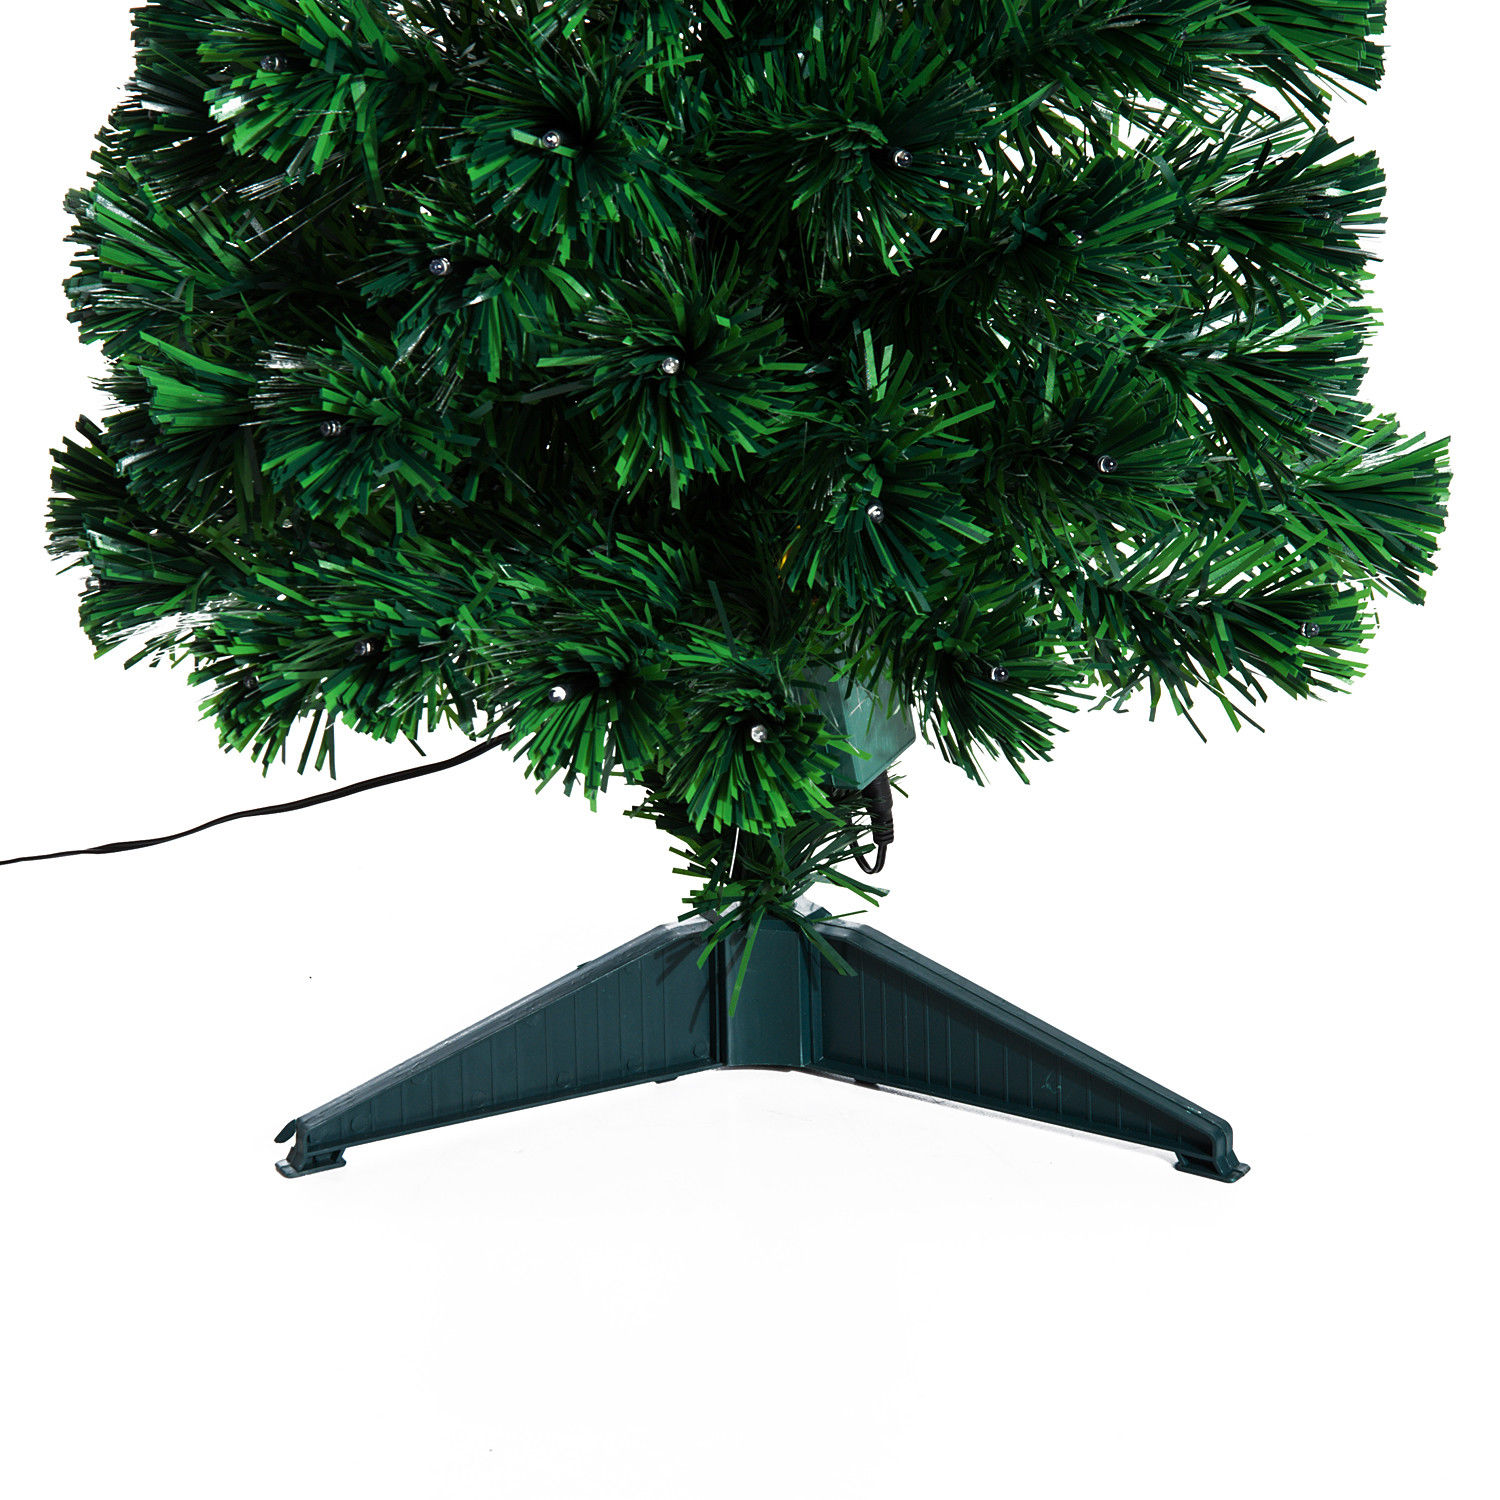 3' Artificial Fiber Optic / LED Light Up Christmas Tree w/ 8 Light Settings and Stand 5